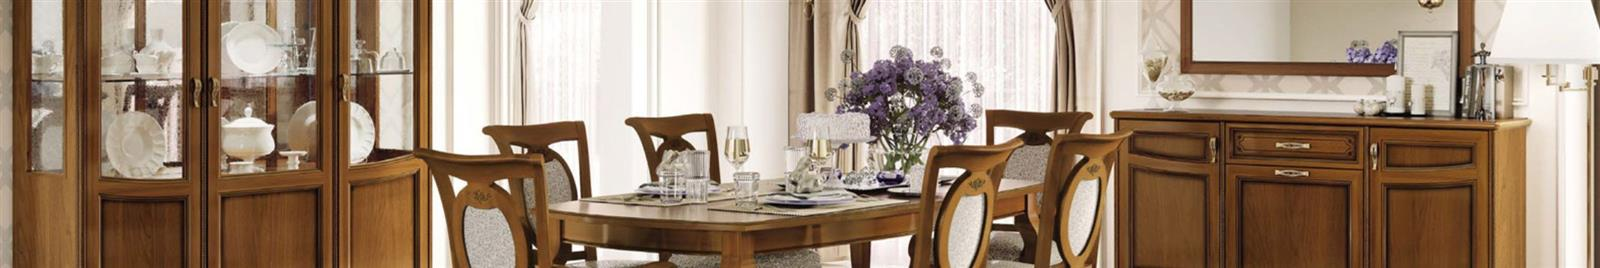 Fantasia - Walnut - Classic Italian Dining Room Furniture